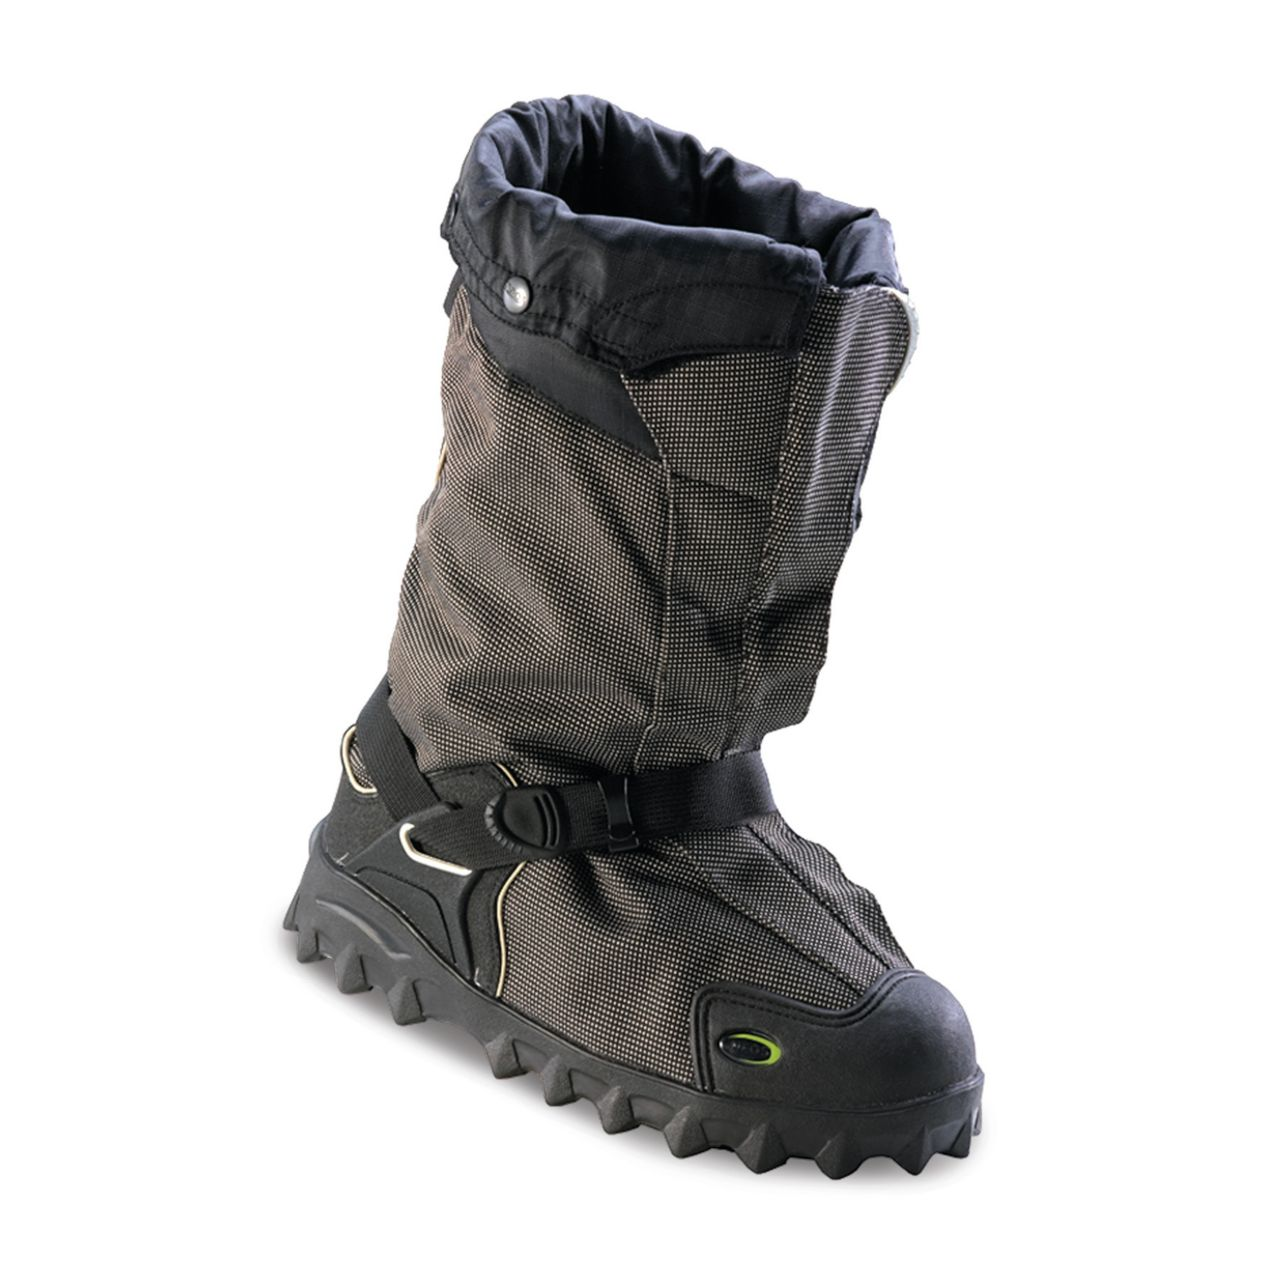 HS_neos_navigator_5_expandable_overshoe_neos_n5p3